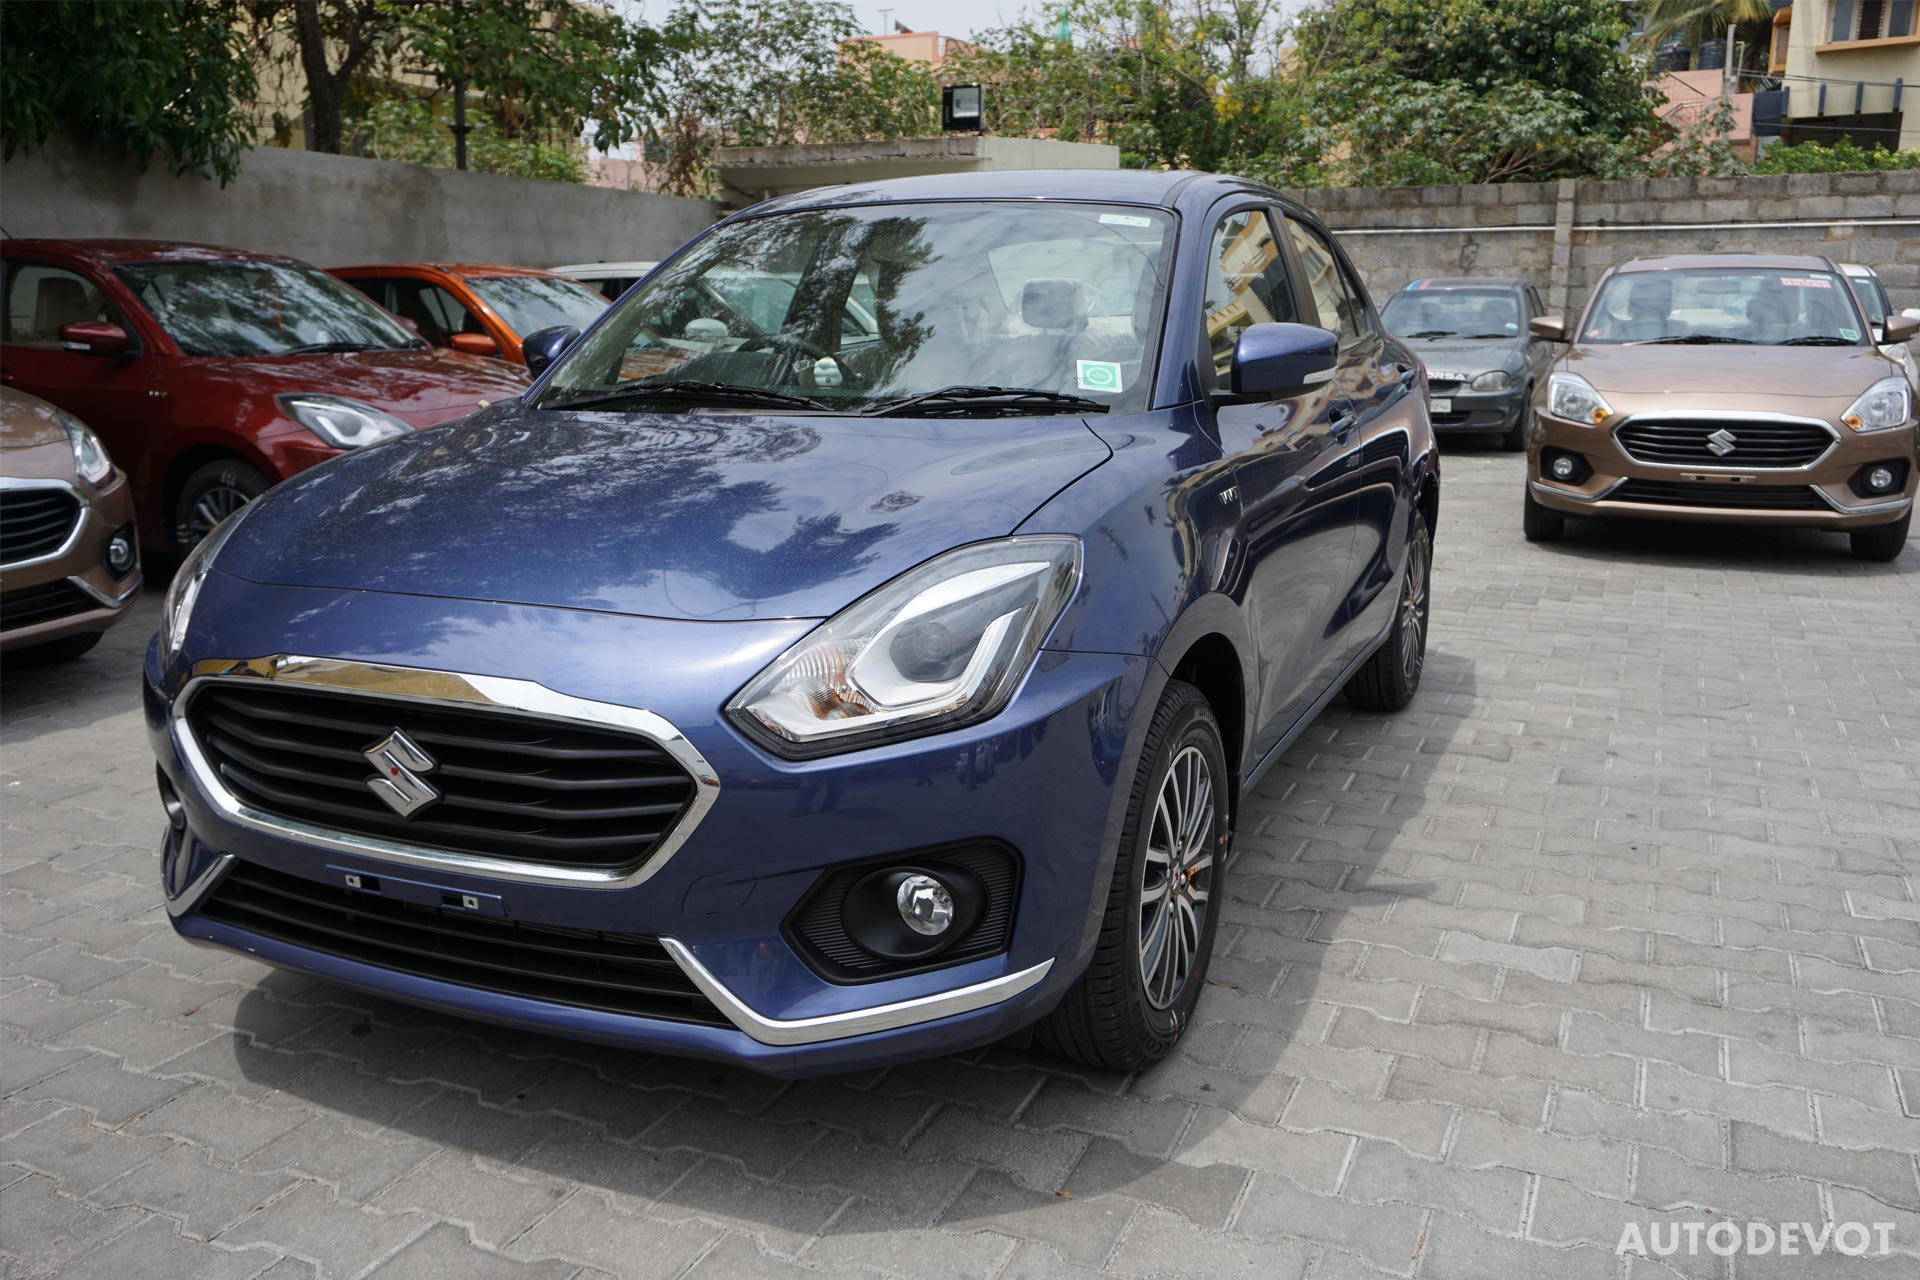 Video: Maruti Suzuki Dzire 2017 - Autodevot